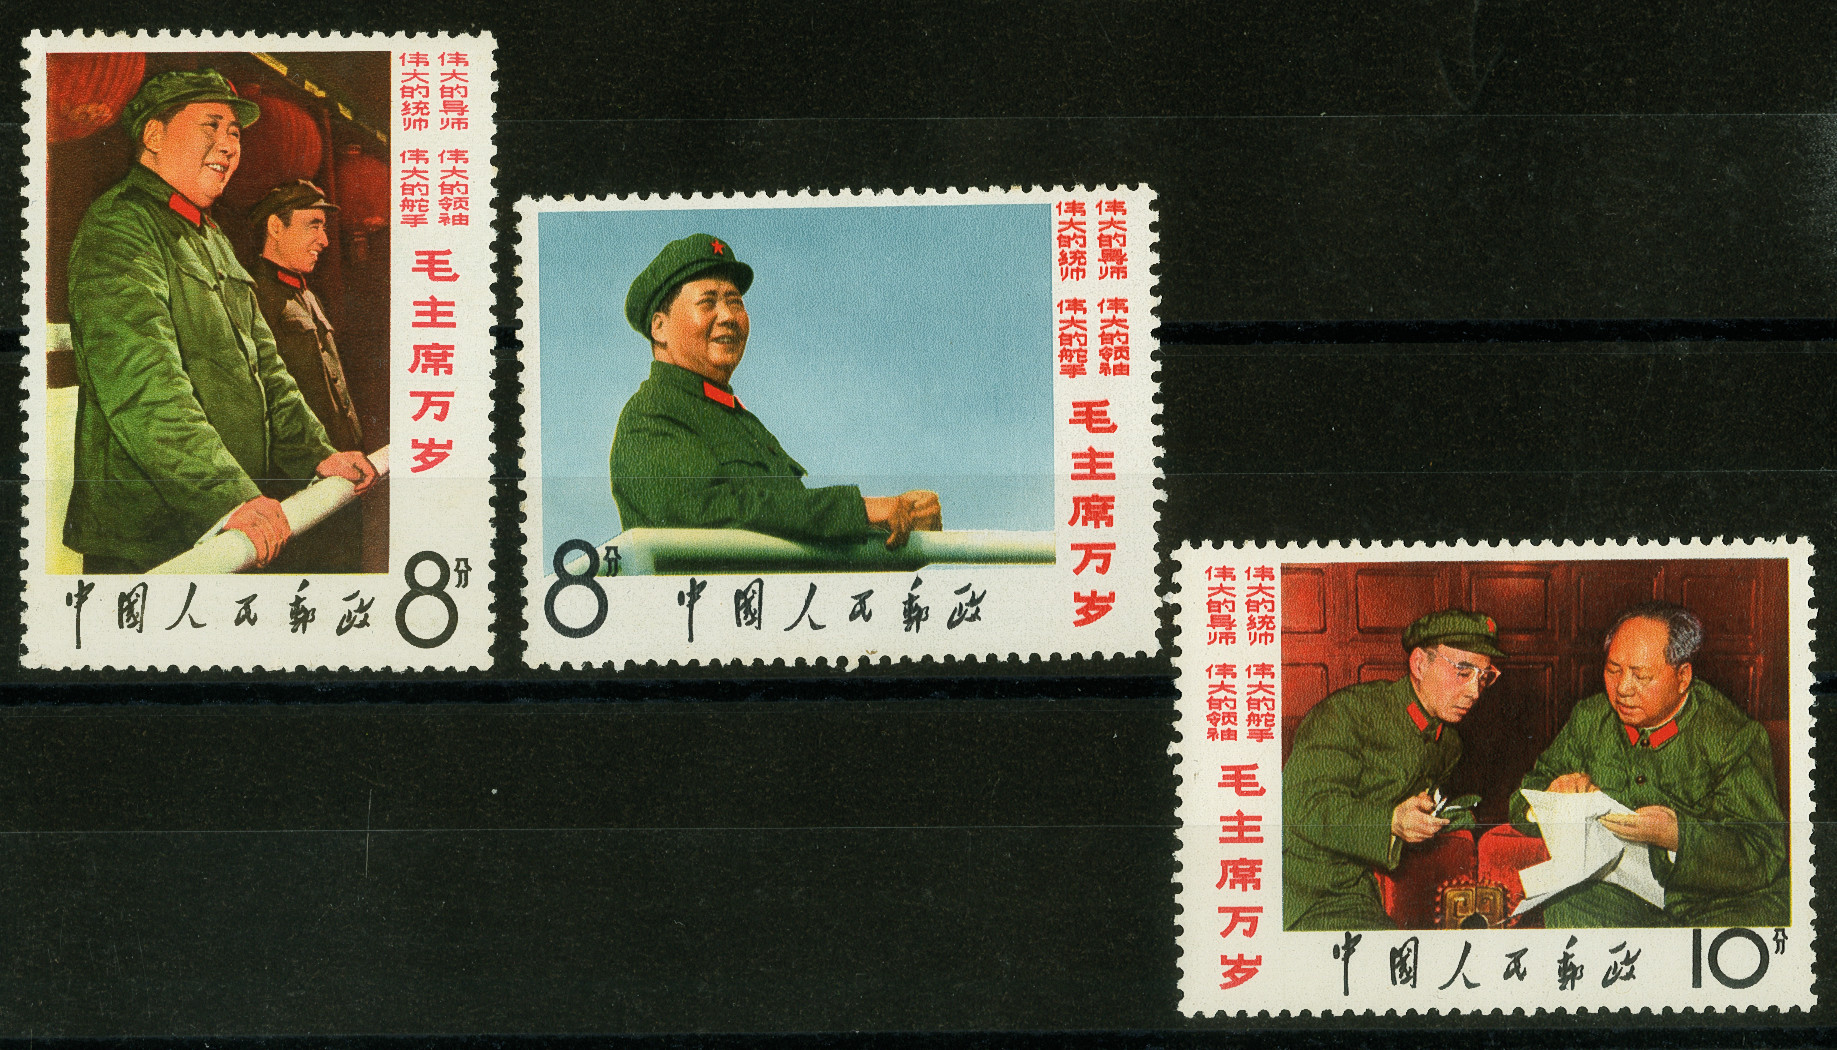 Lot 1002 - Overseas People's Republic of China -  Heinrich Koehler Auktionen Auction #367- Day 1